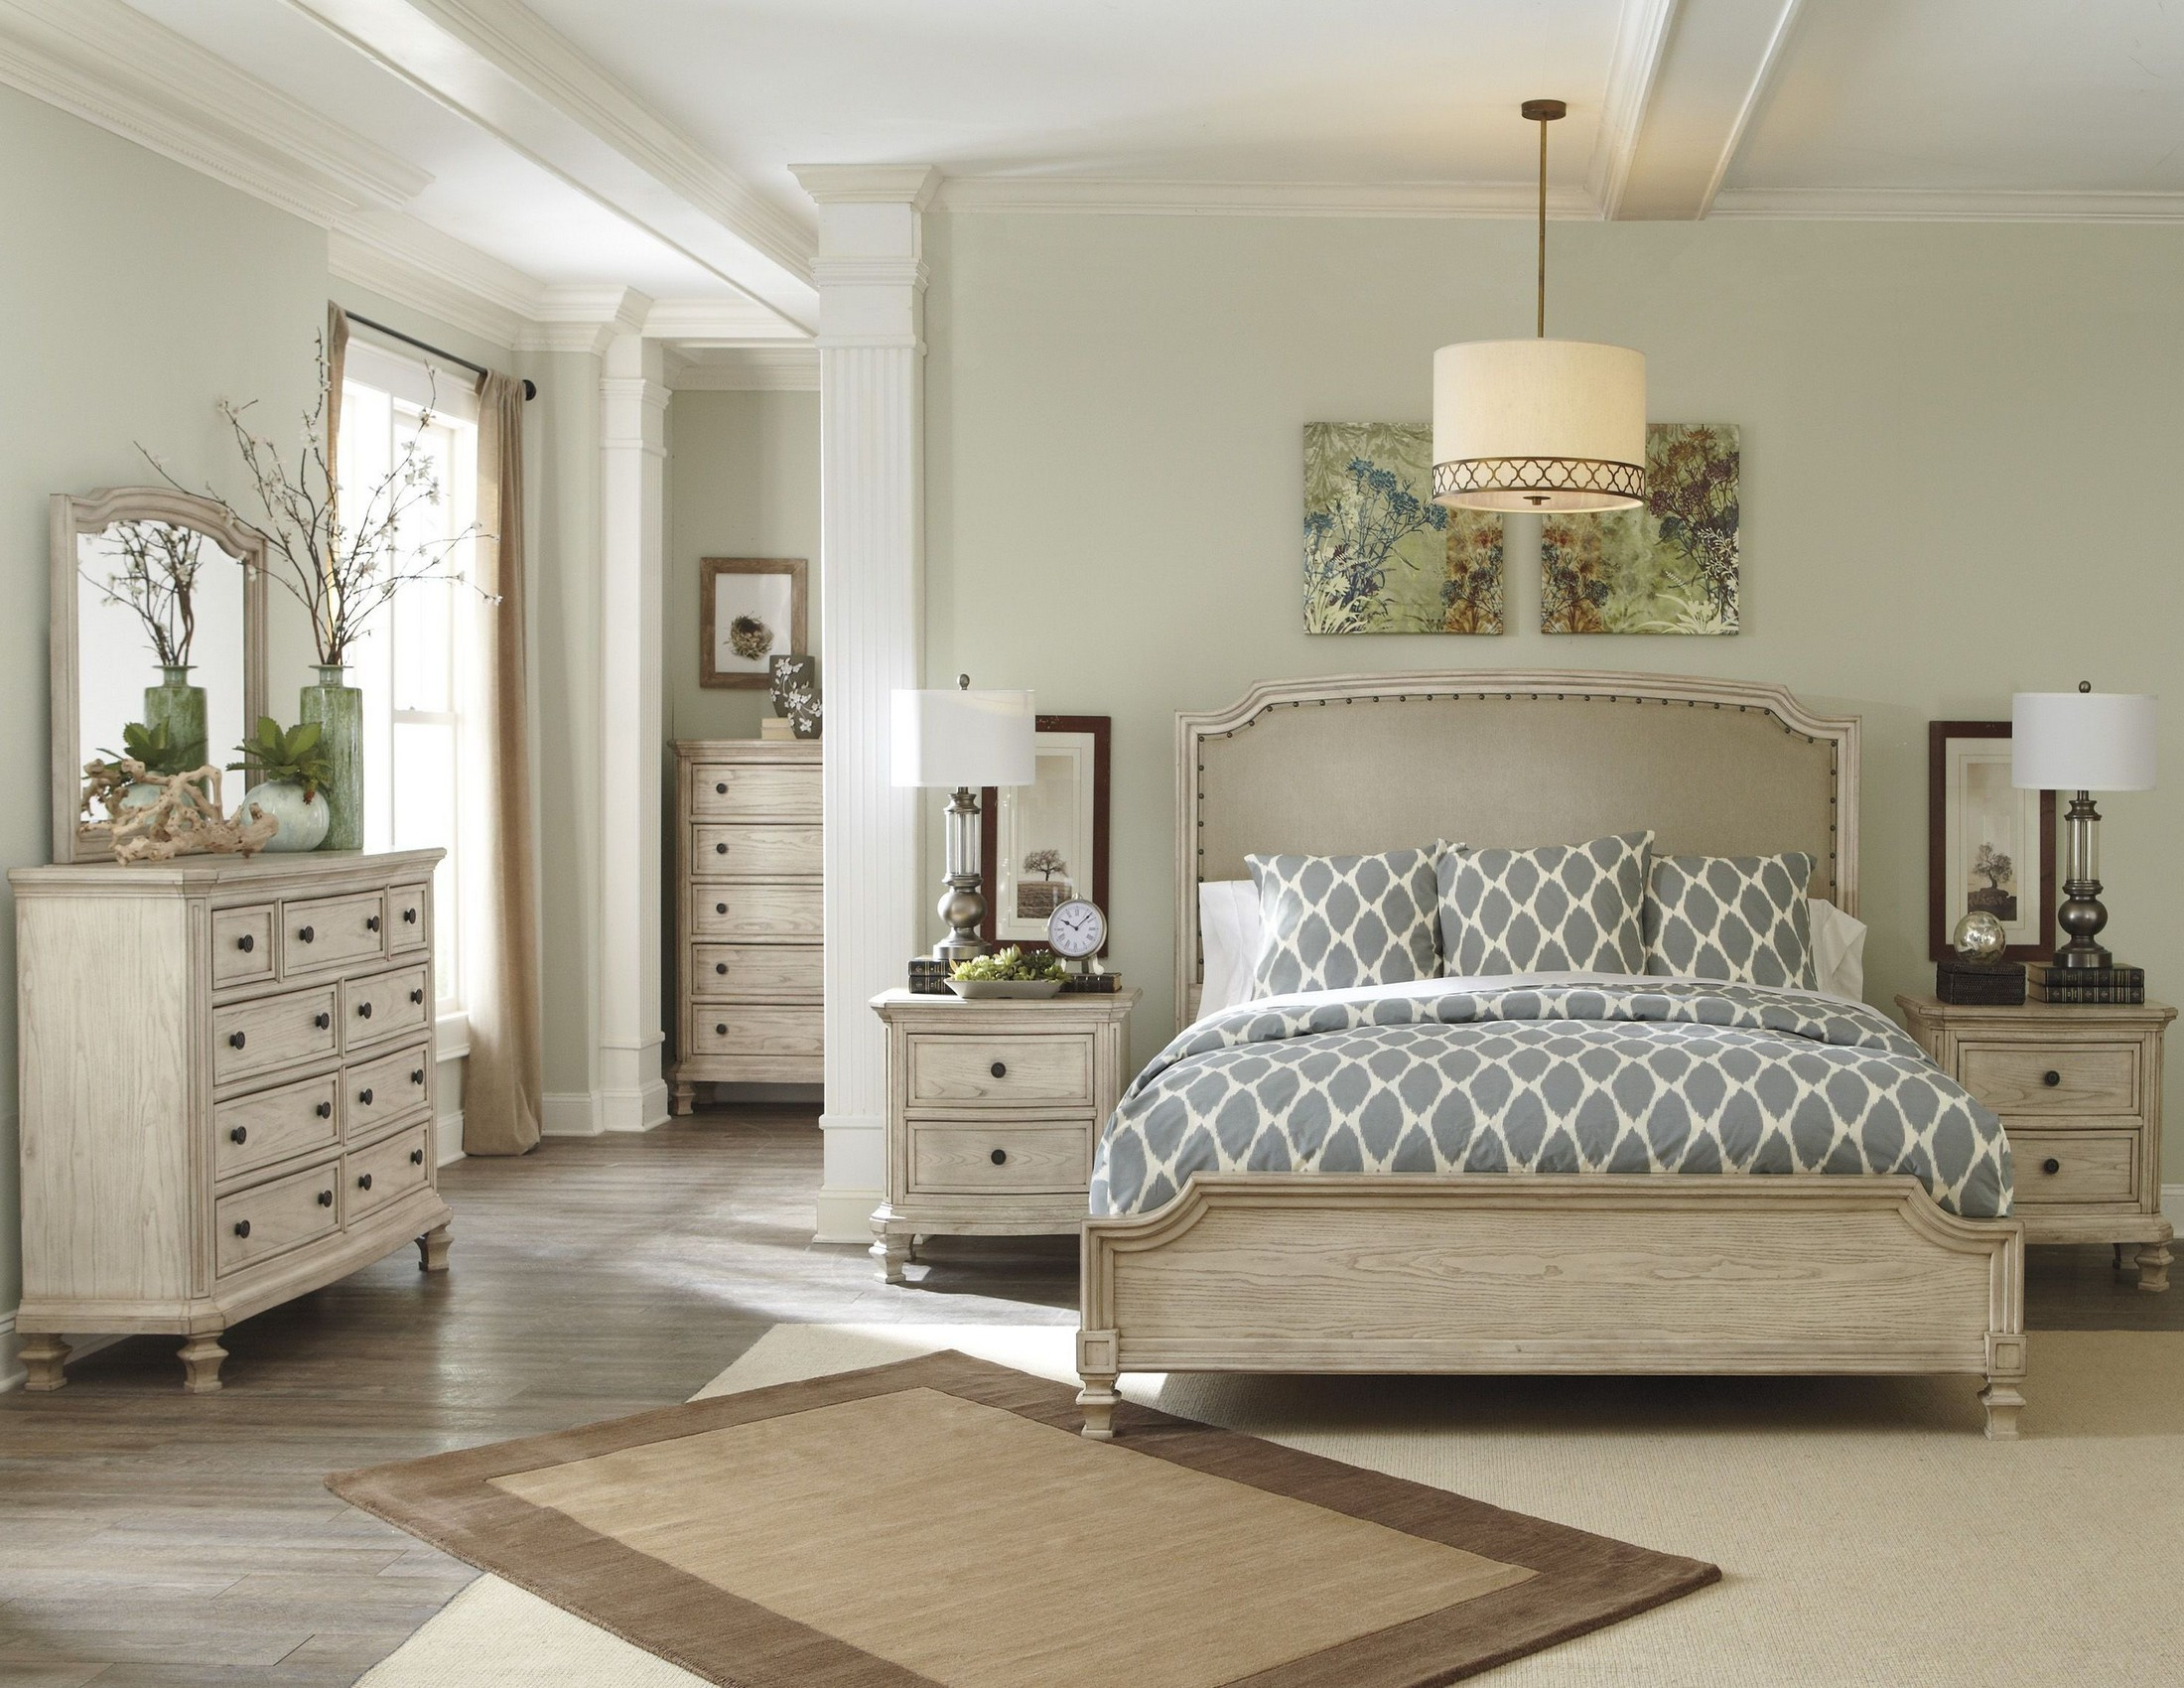 demarlos upholstered panel bedroom set from ashley b693 13696 | b693 31 36 46 78 76 97 92 2 9